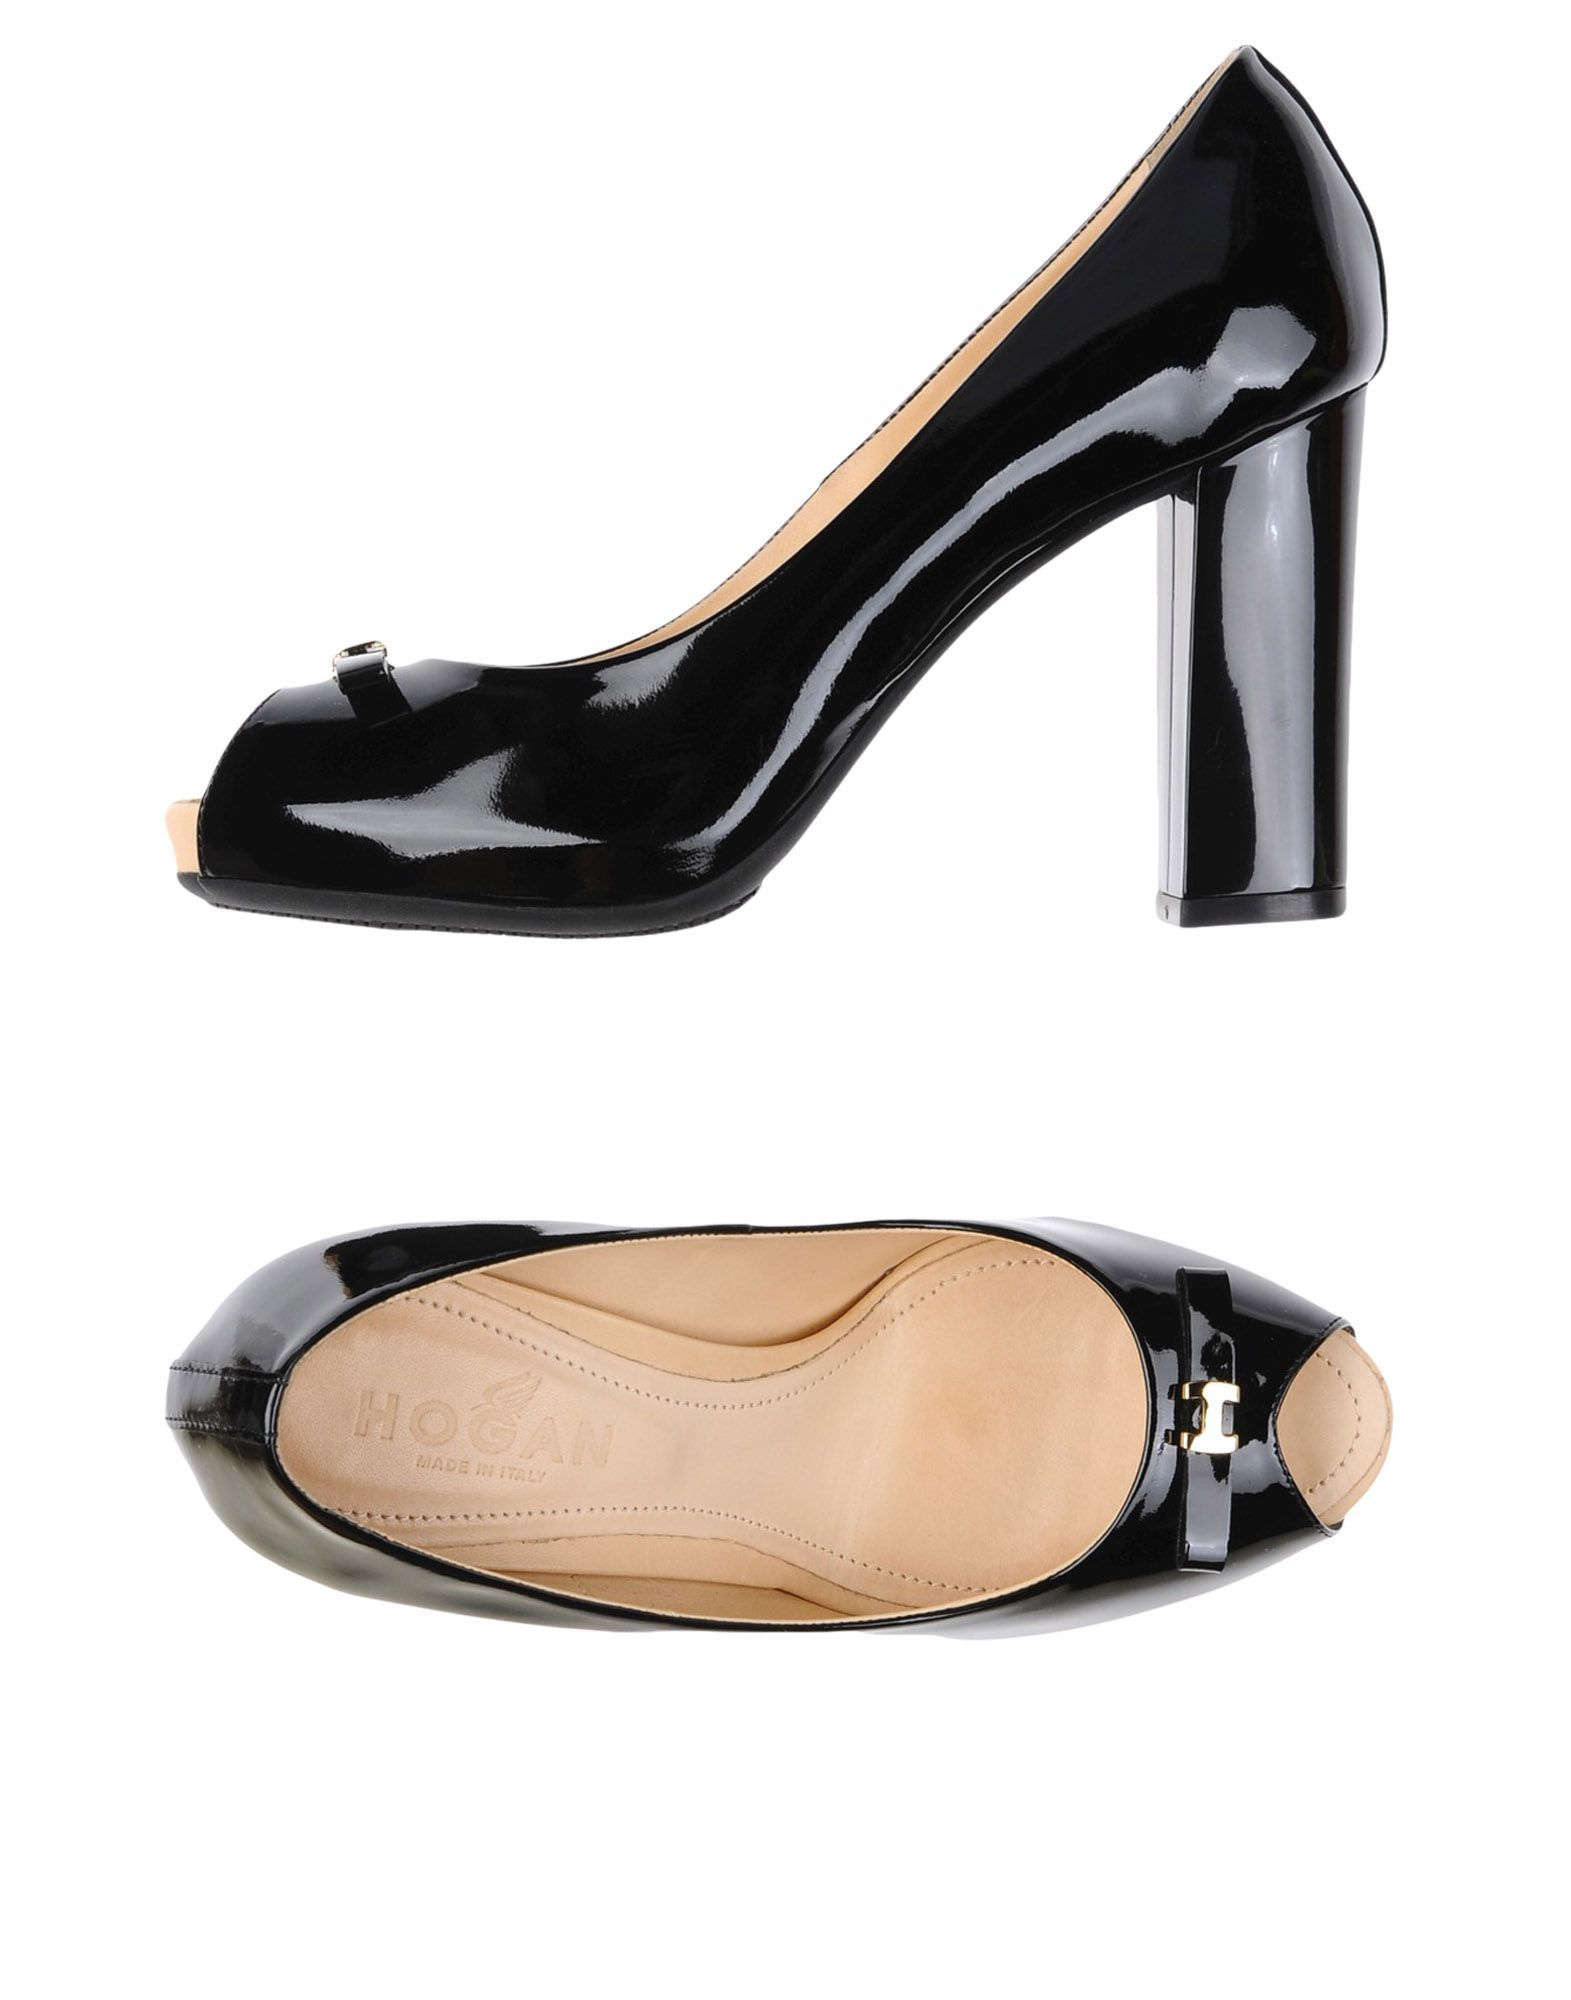 Hogan Black Leather Peeptoe Heels